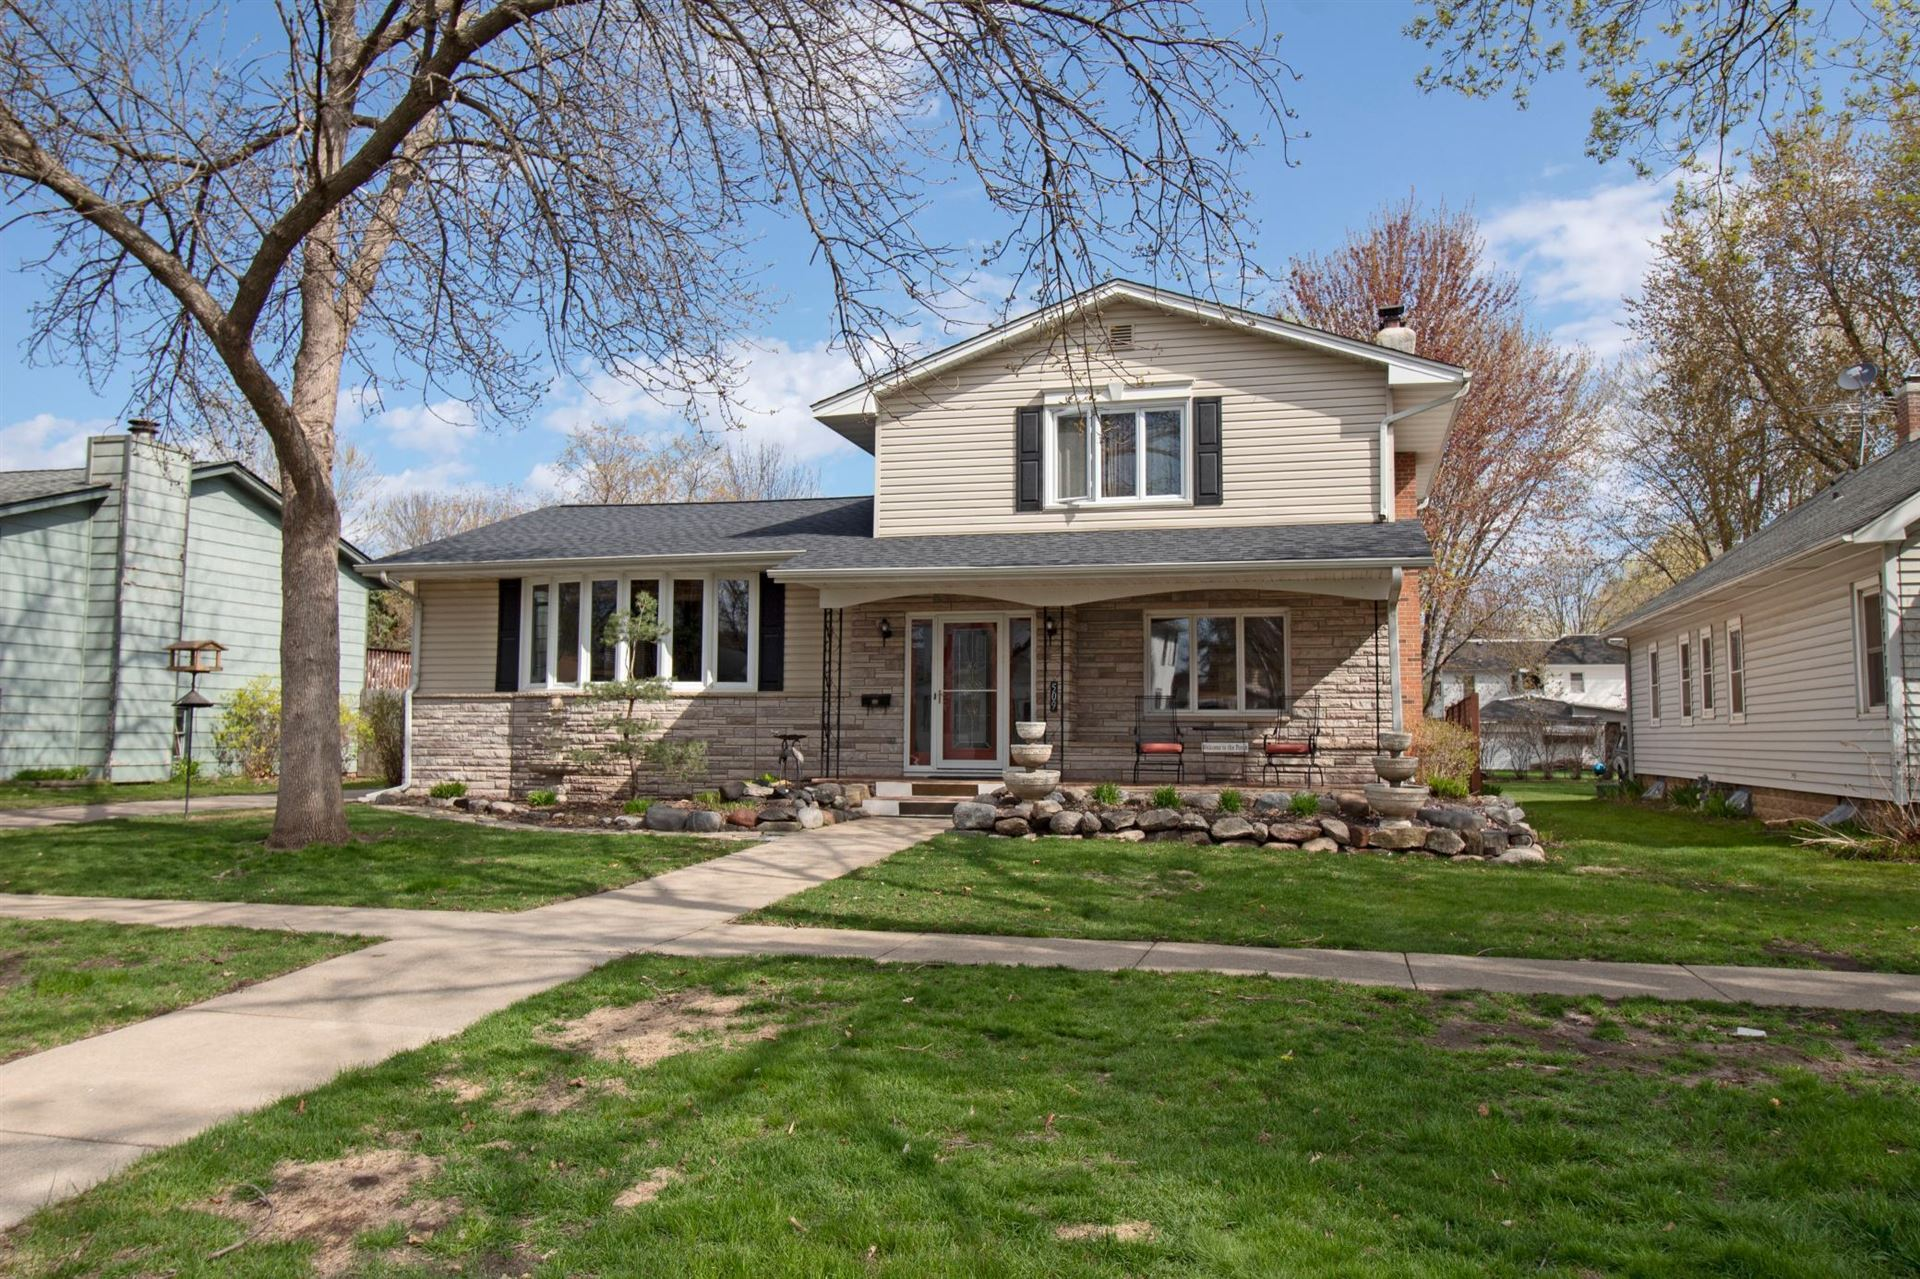 Photo of 509 Spruce Street, Farmington, MN 55024 (MLS # 5750497)